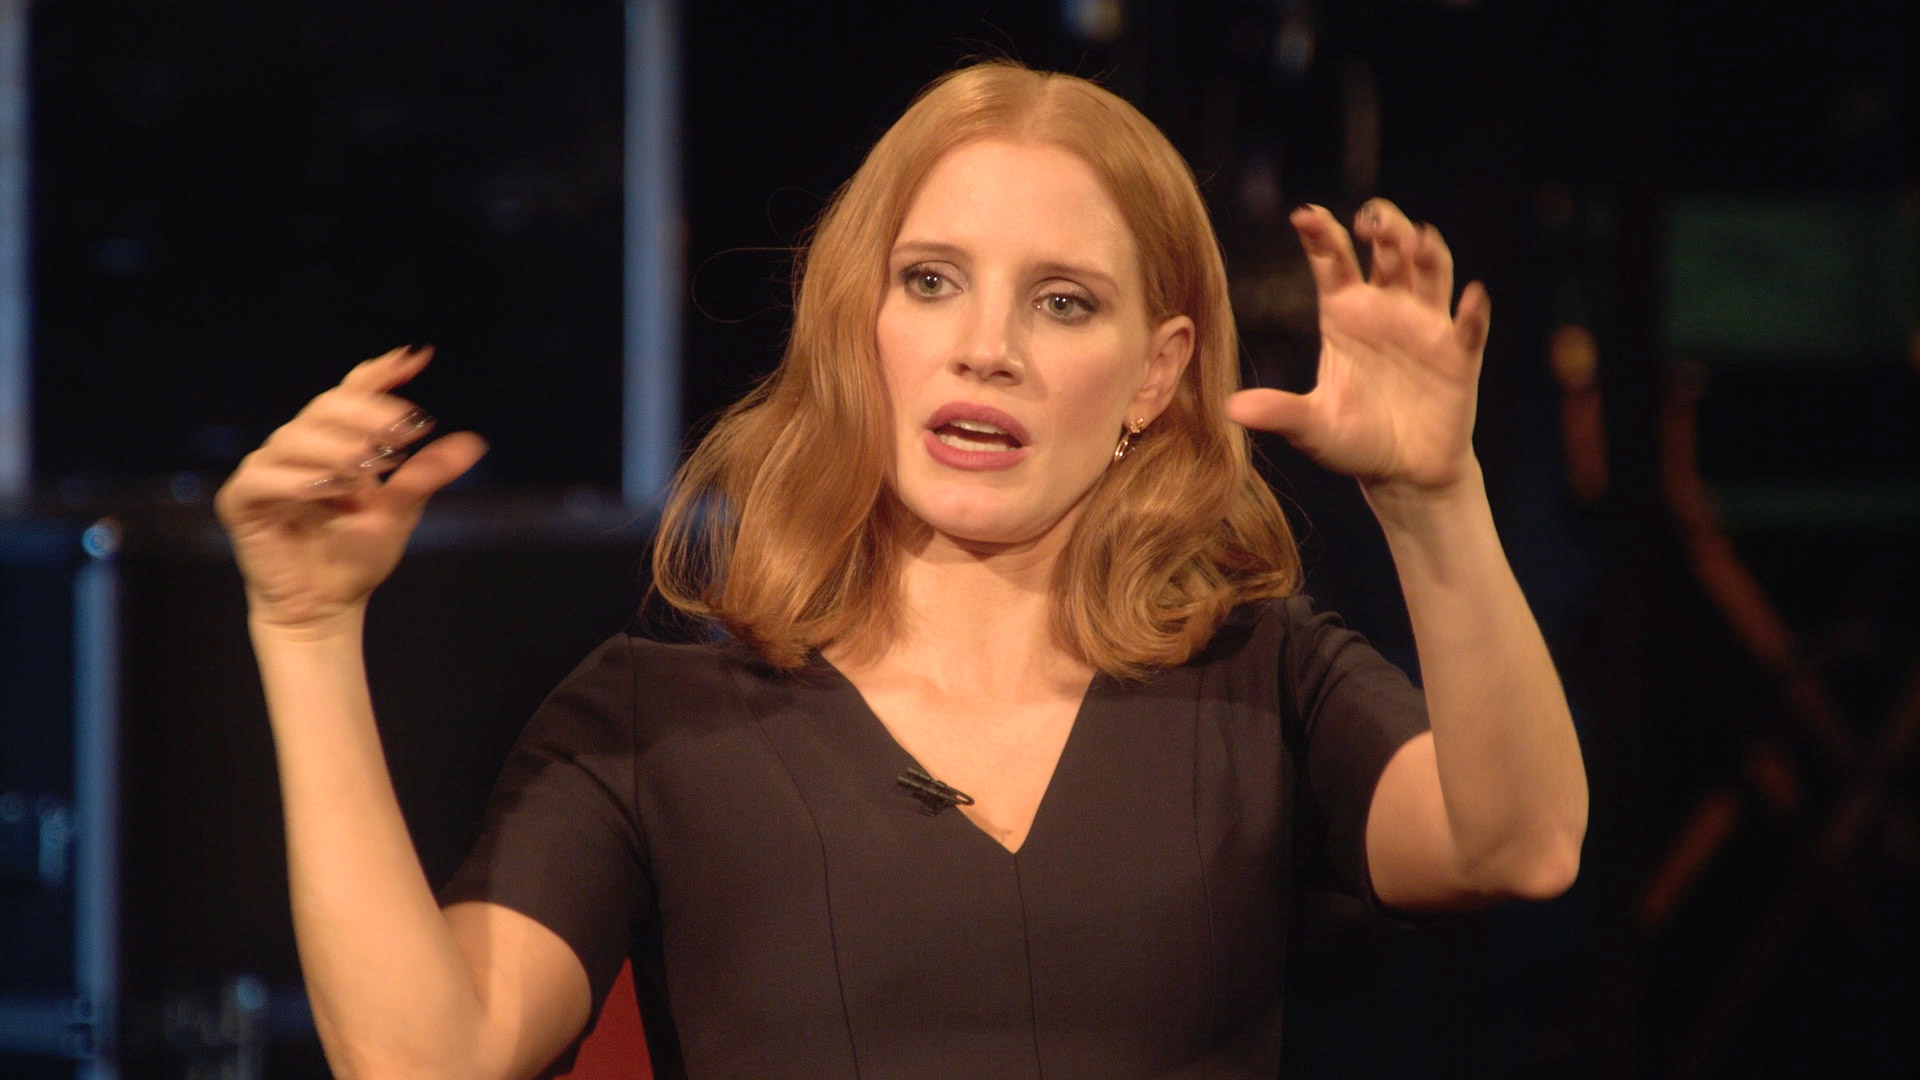 Jessica Chastain on Not Being Able to Get Close to Matt Damon